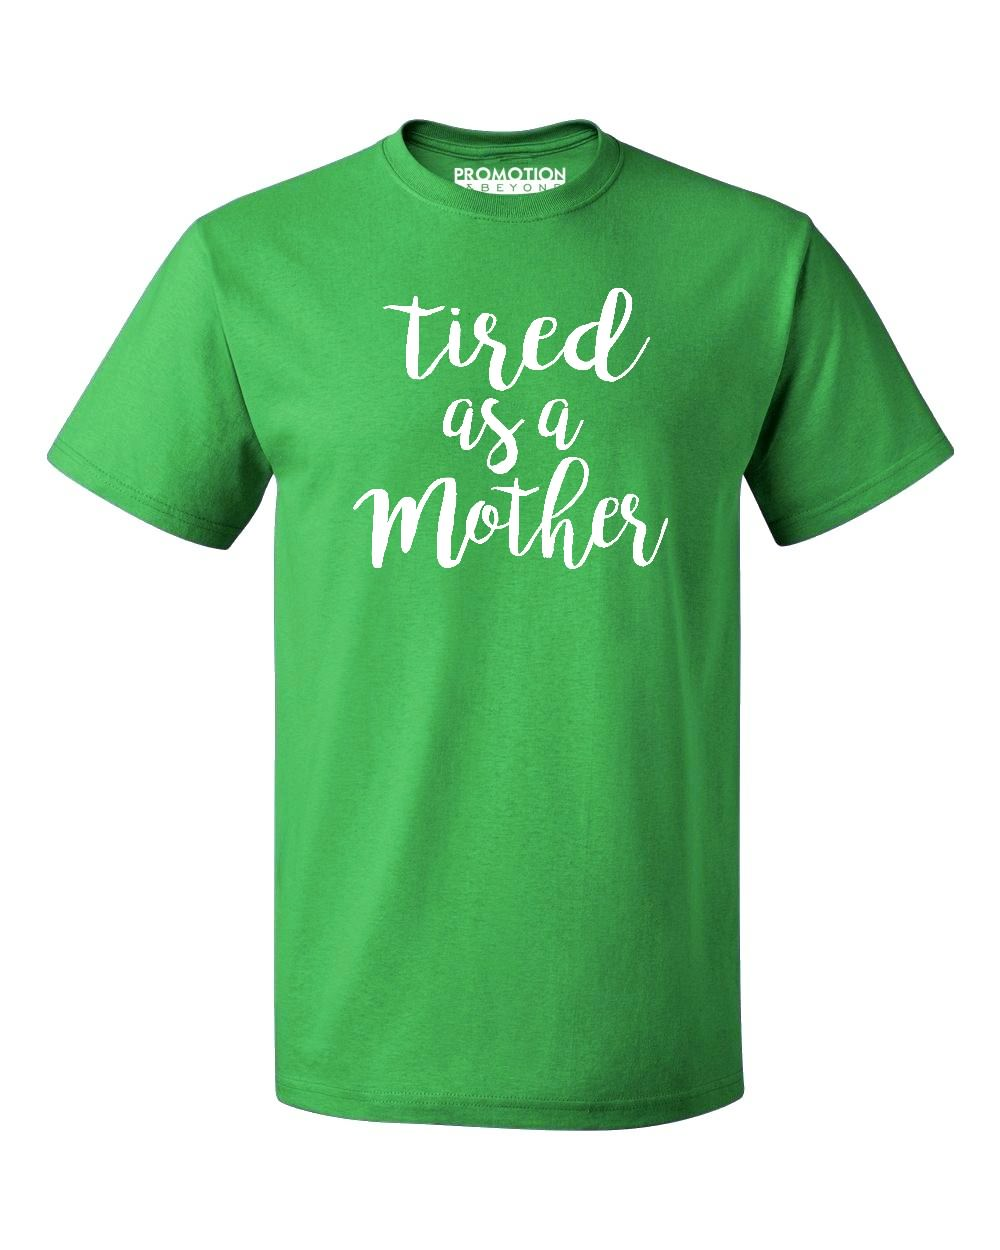 f40a712fa Promotion & Beyond - P&B Tired as a Mother Funny Men's T-shirt, Green, XL -  Walmart.com